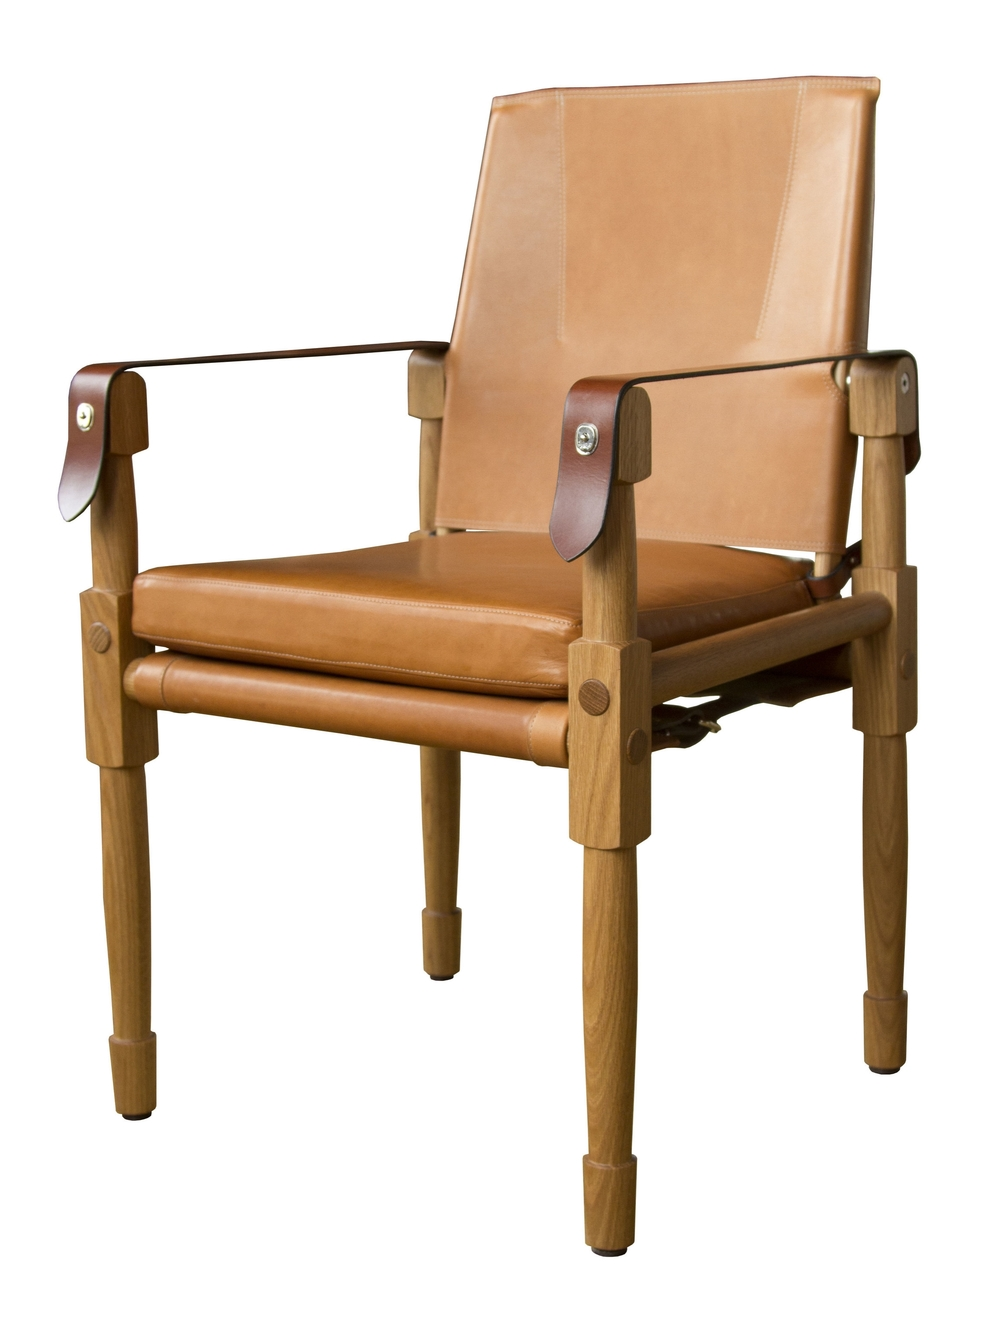 Oiled white oak with matte finish, Valhalla: nutmeg and saddle English bridle leather strapping  02